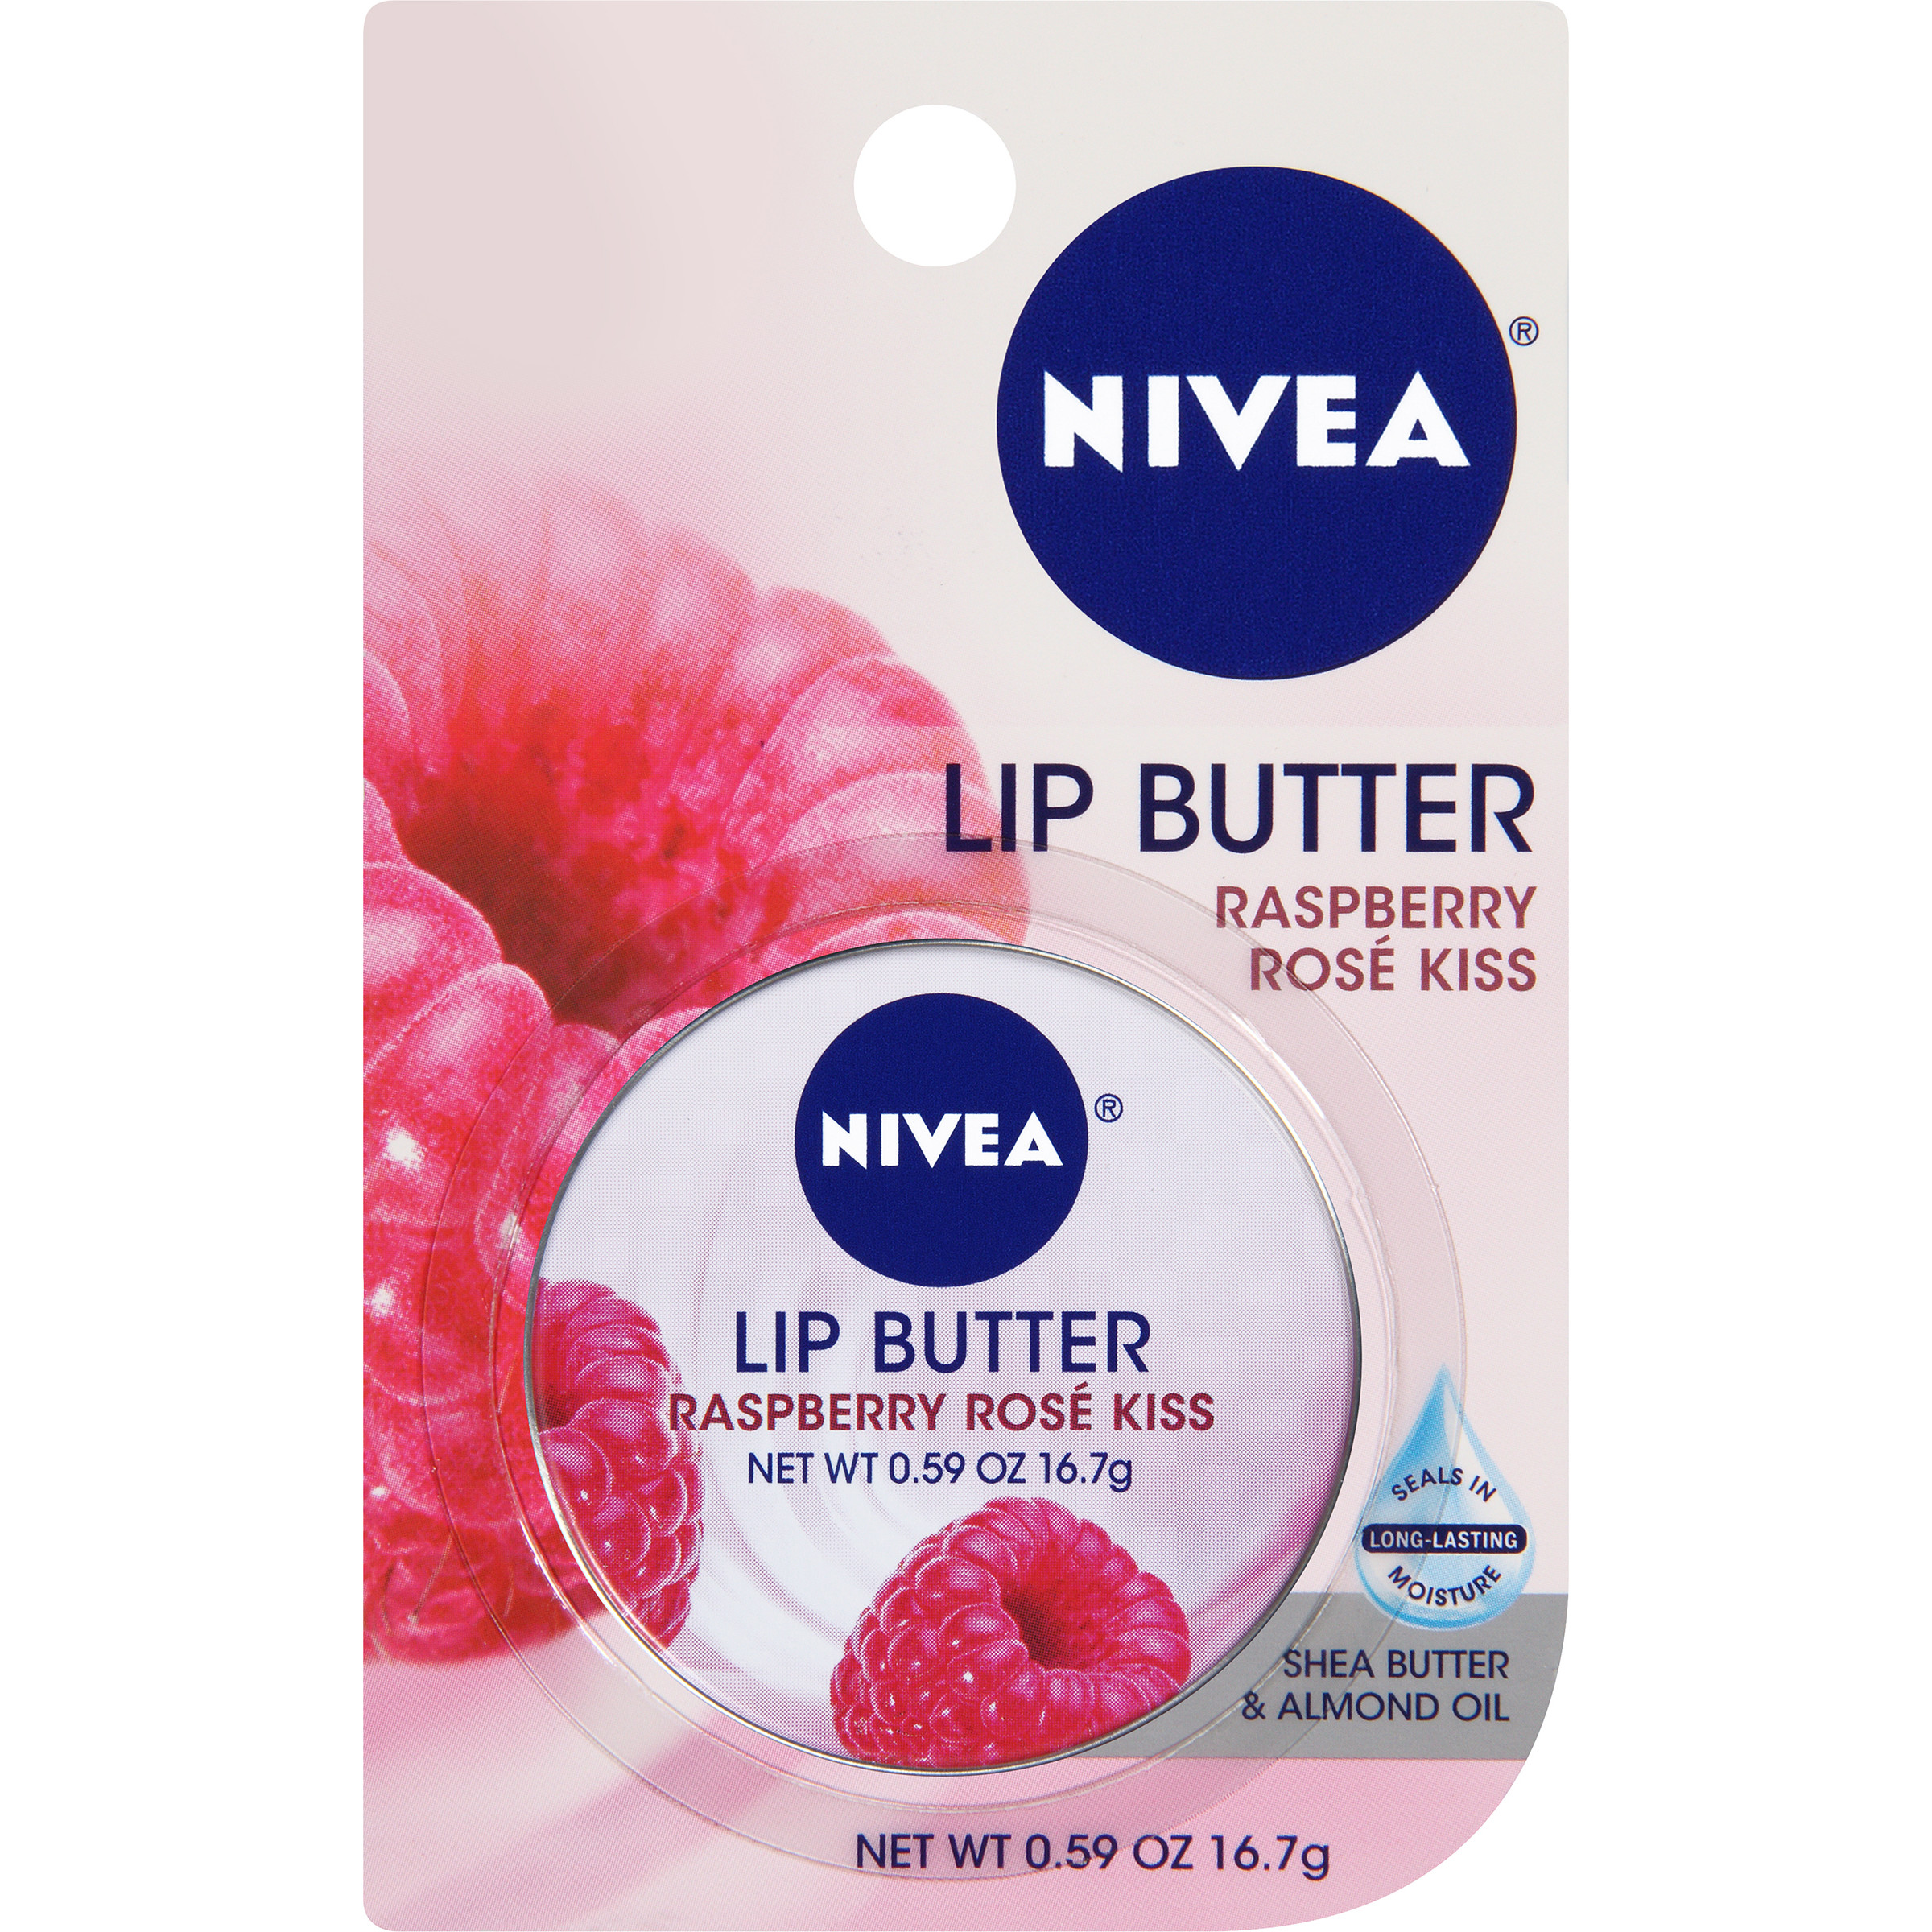 NIVEA® Raspberry Rose Lip Butter 0.59 oz. Carded Tin